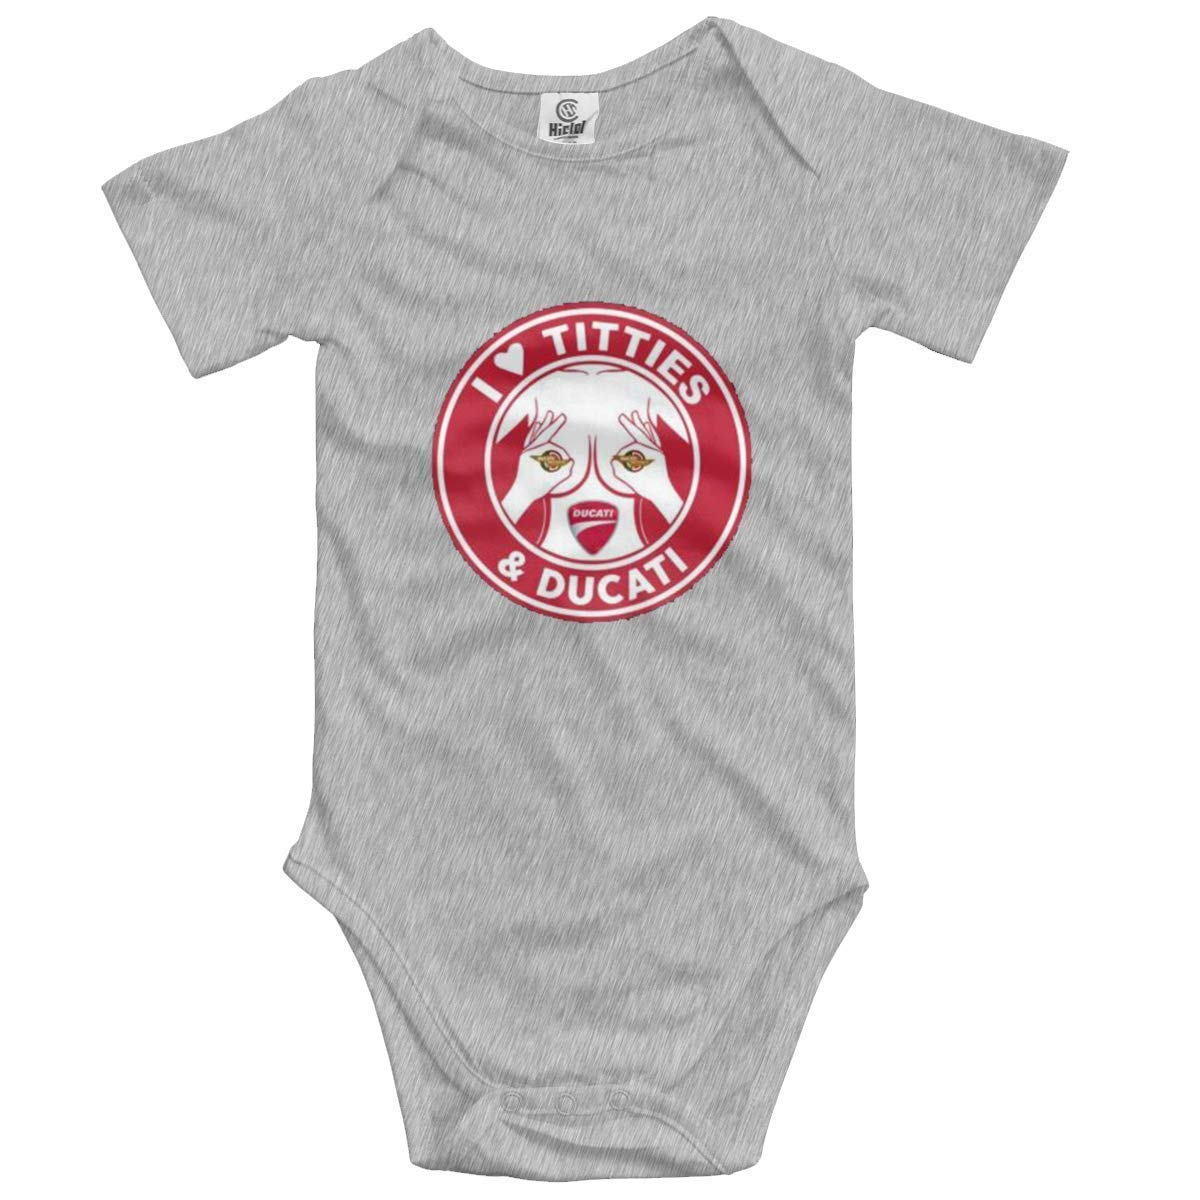 HOTNING Ropa para beb/és I Love Titties and Ducati One-Piece Baby Bodysuit